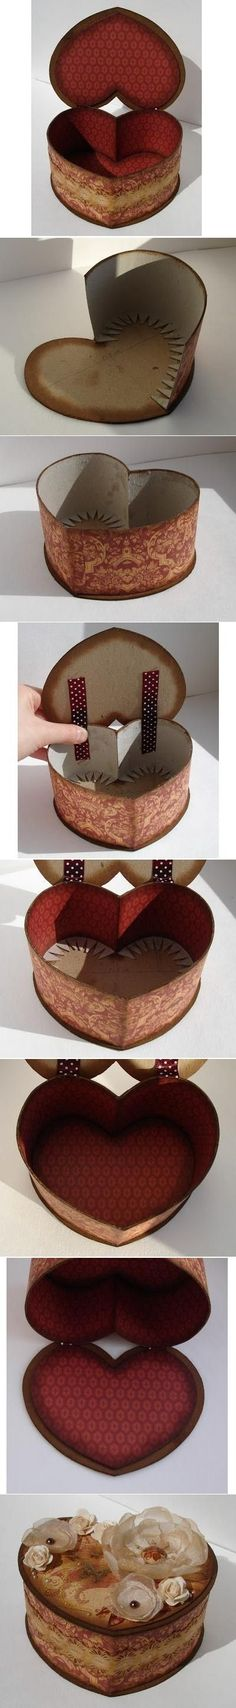 DIY Cardboard Heart Shaped Box DIY Cardboard Heart Shaped Box